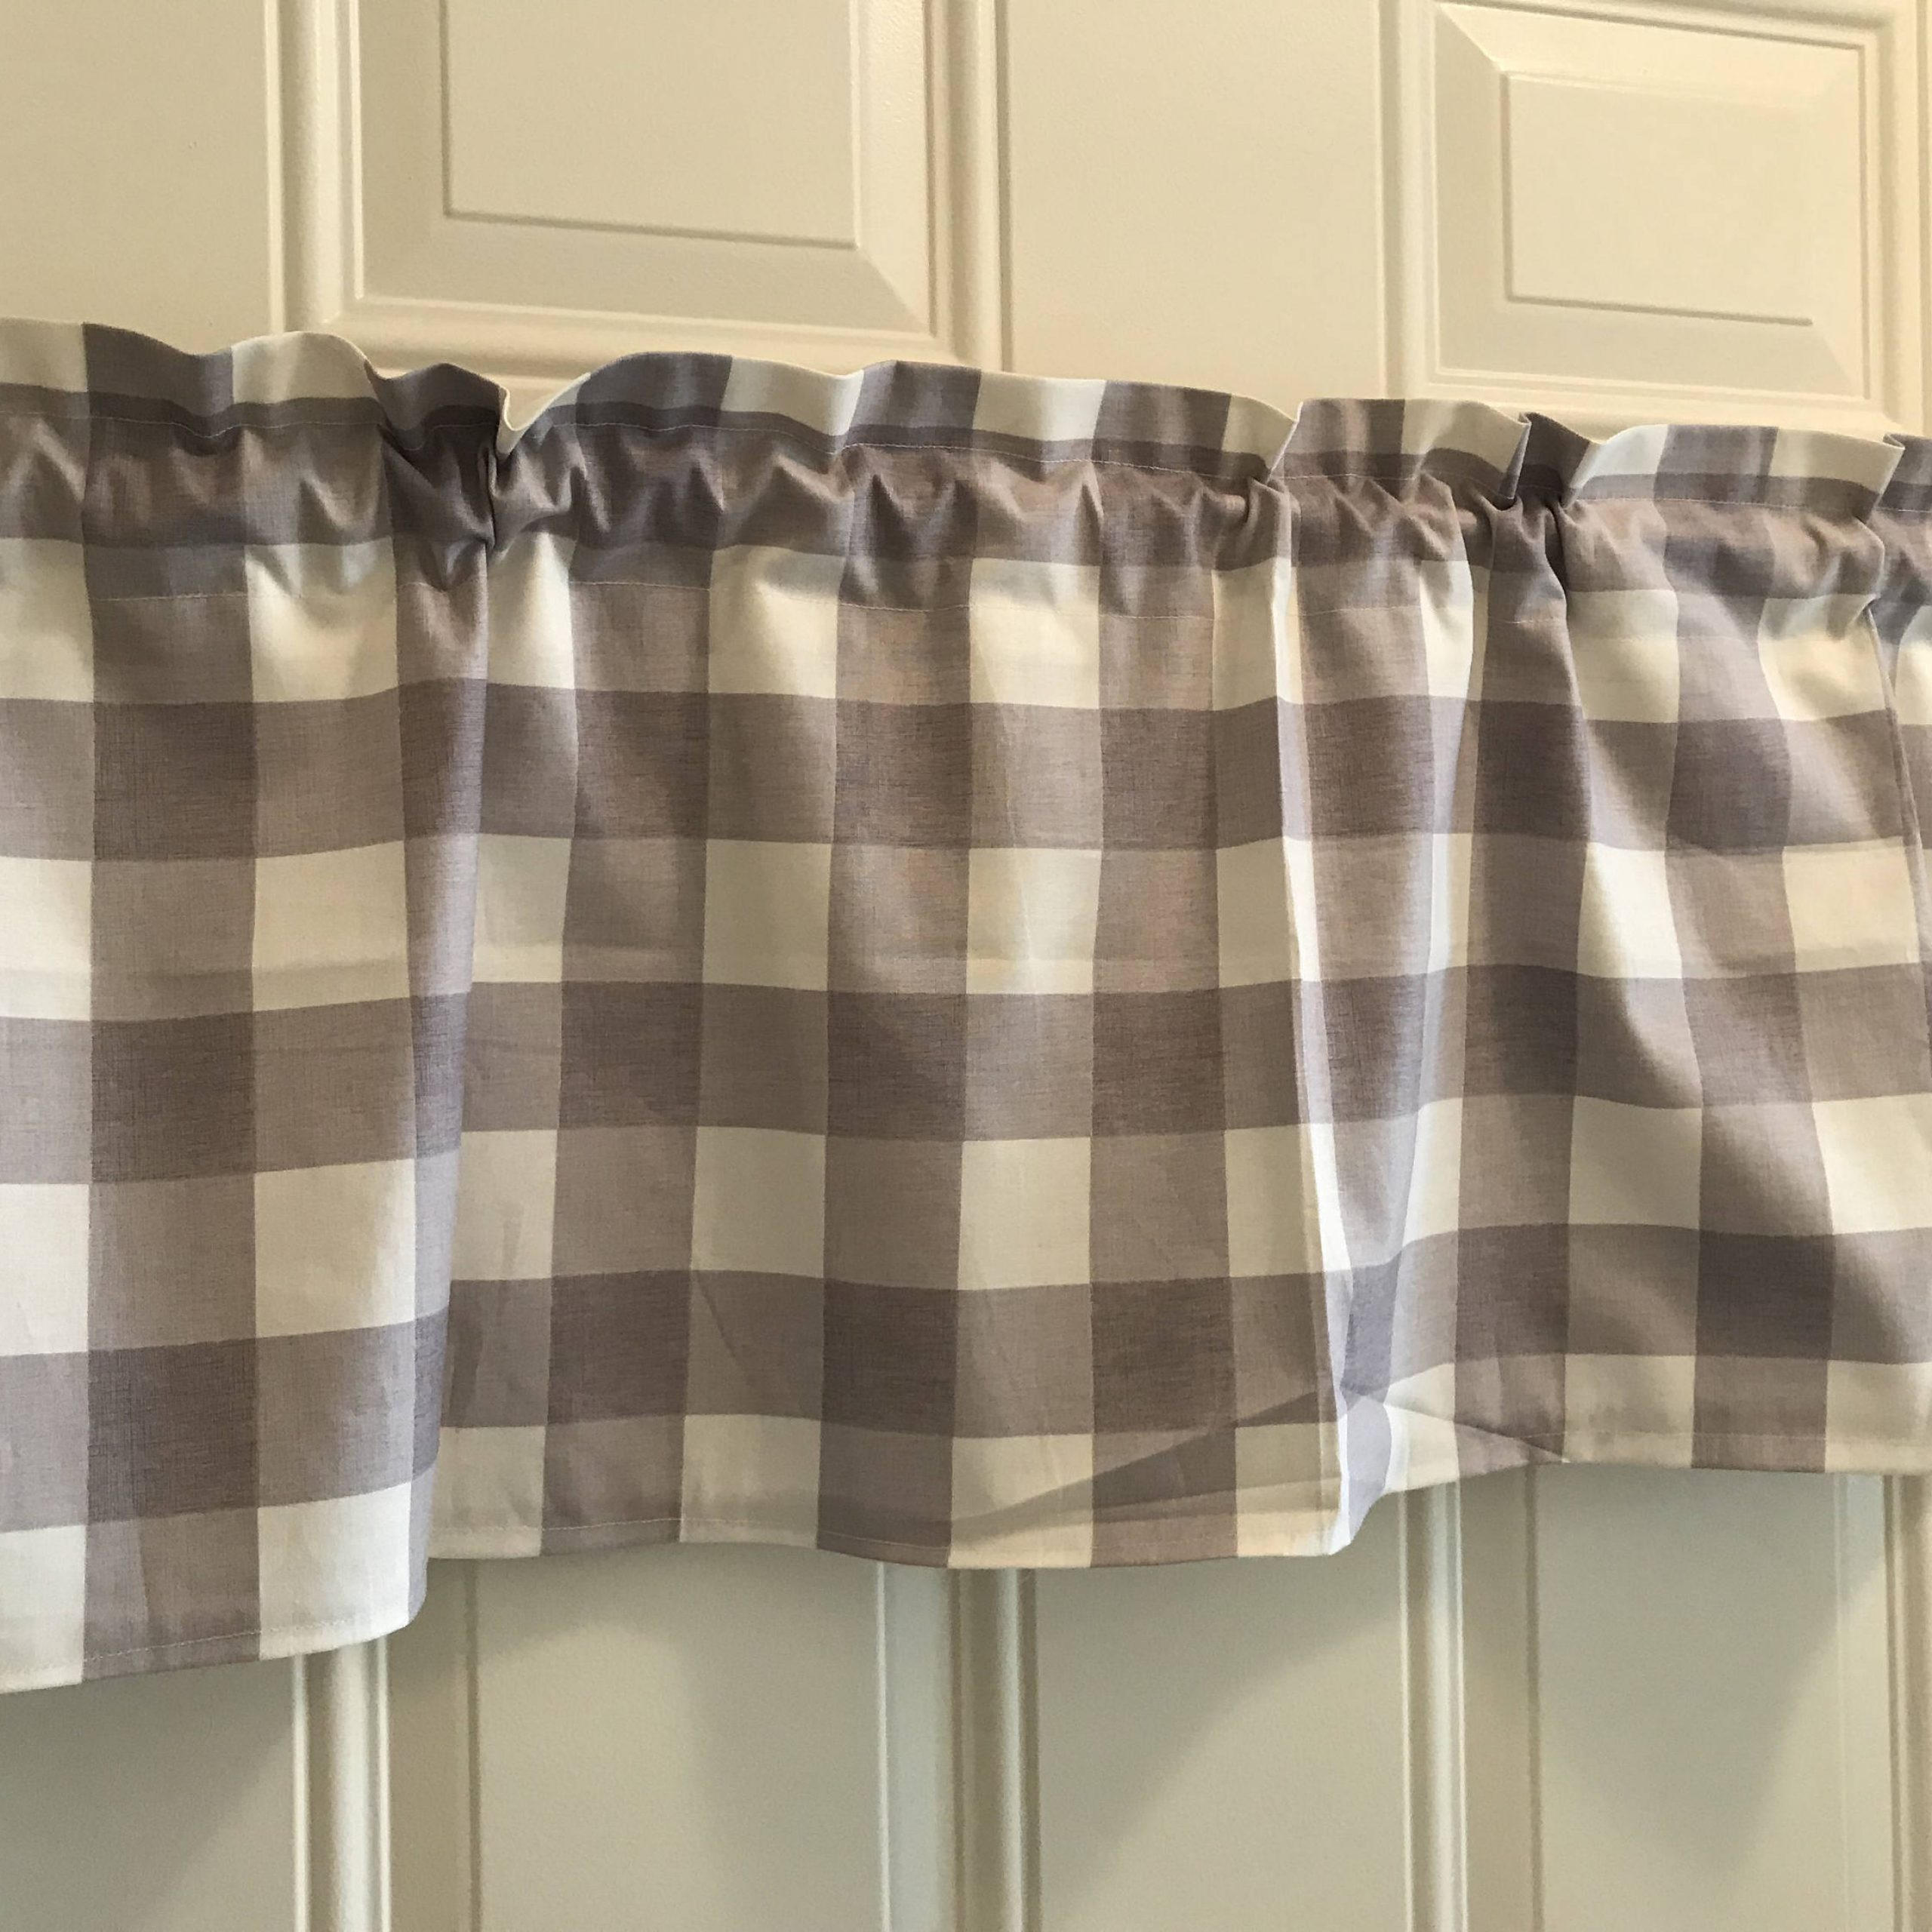 Barnyard Buffalo Check Rooster Window Valances Regarding Best And Newest Farmhouse Gray And White Gingham Buffalo Check Curtain Valance (View 17 of 20)